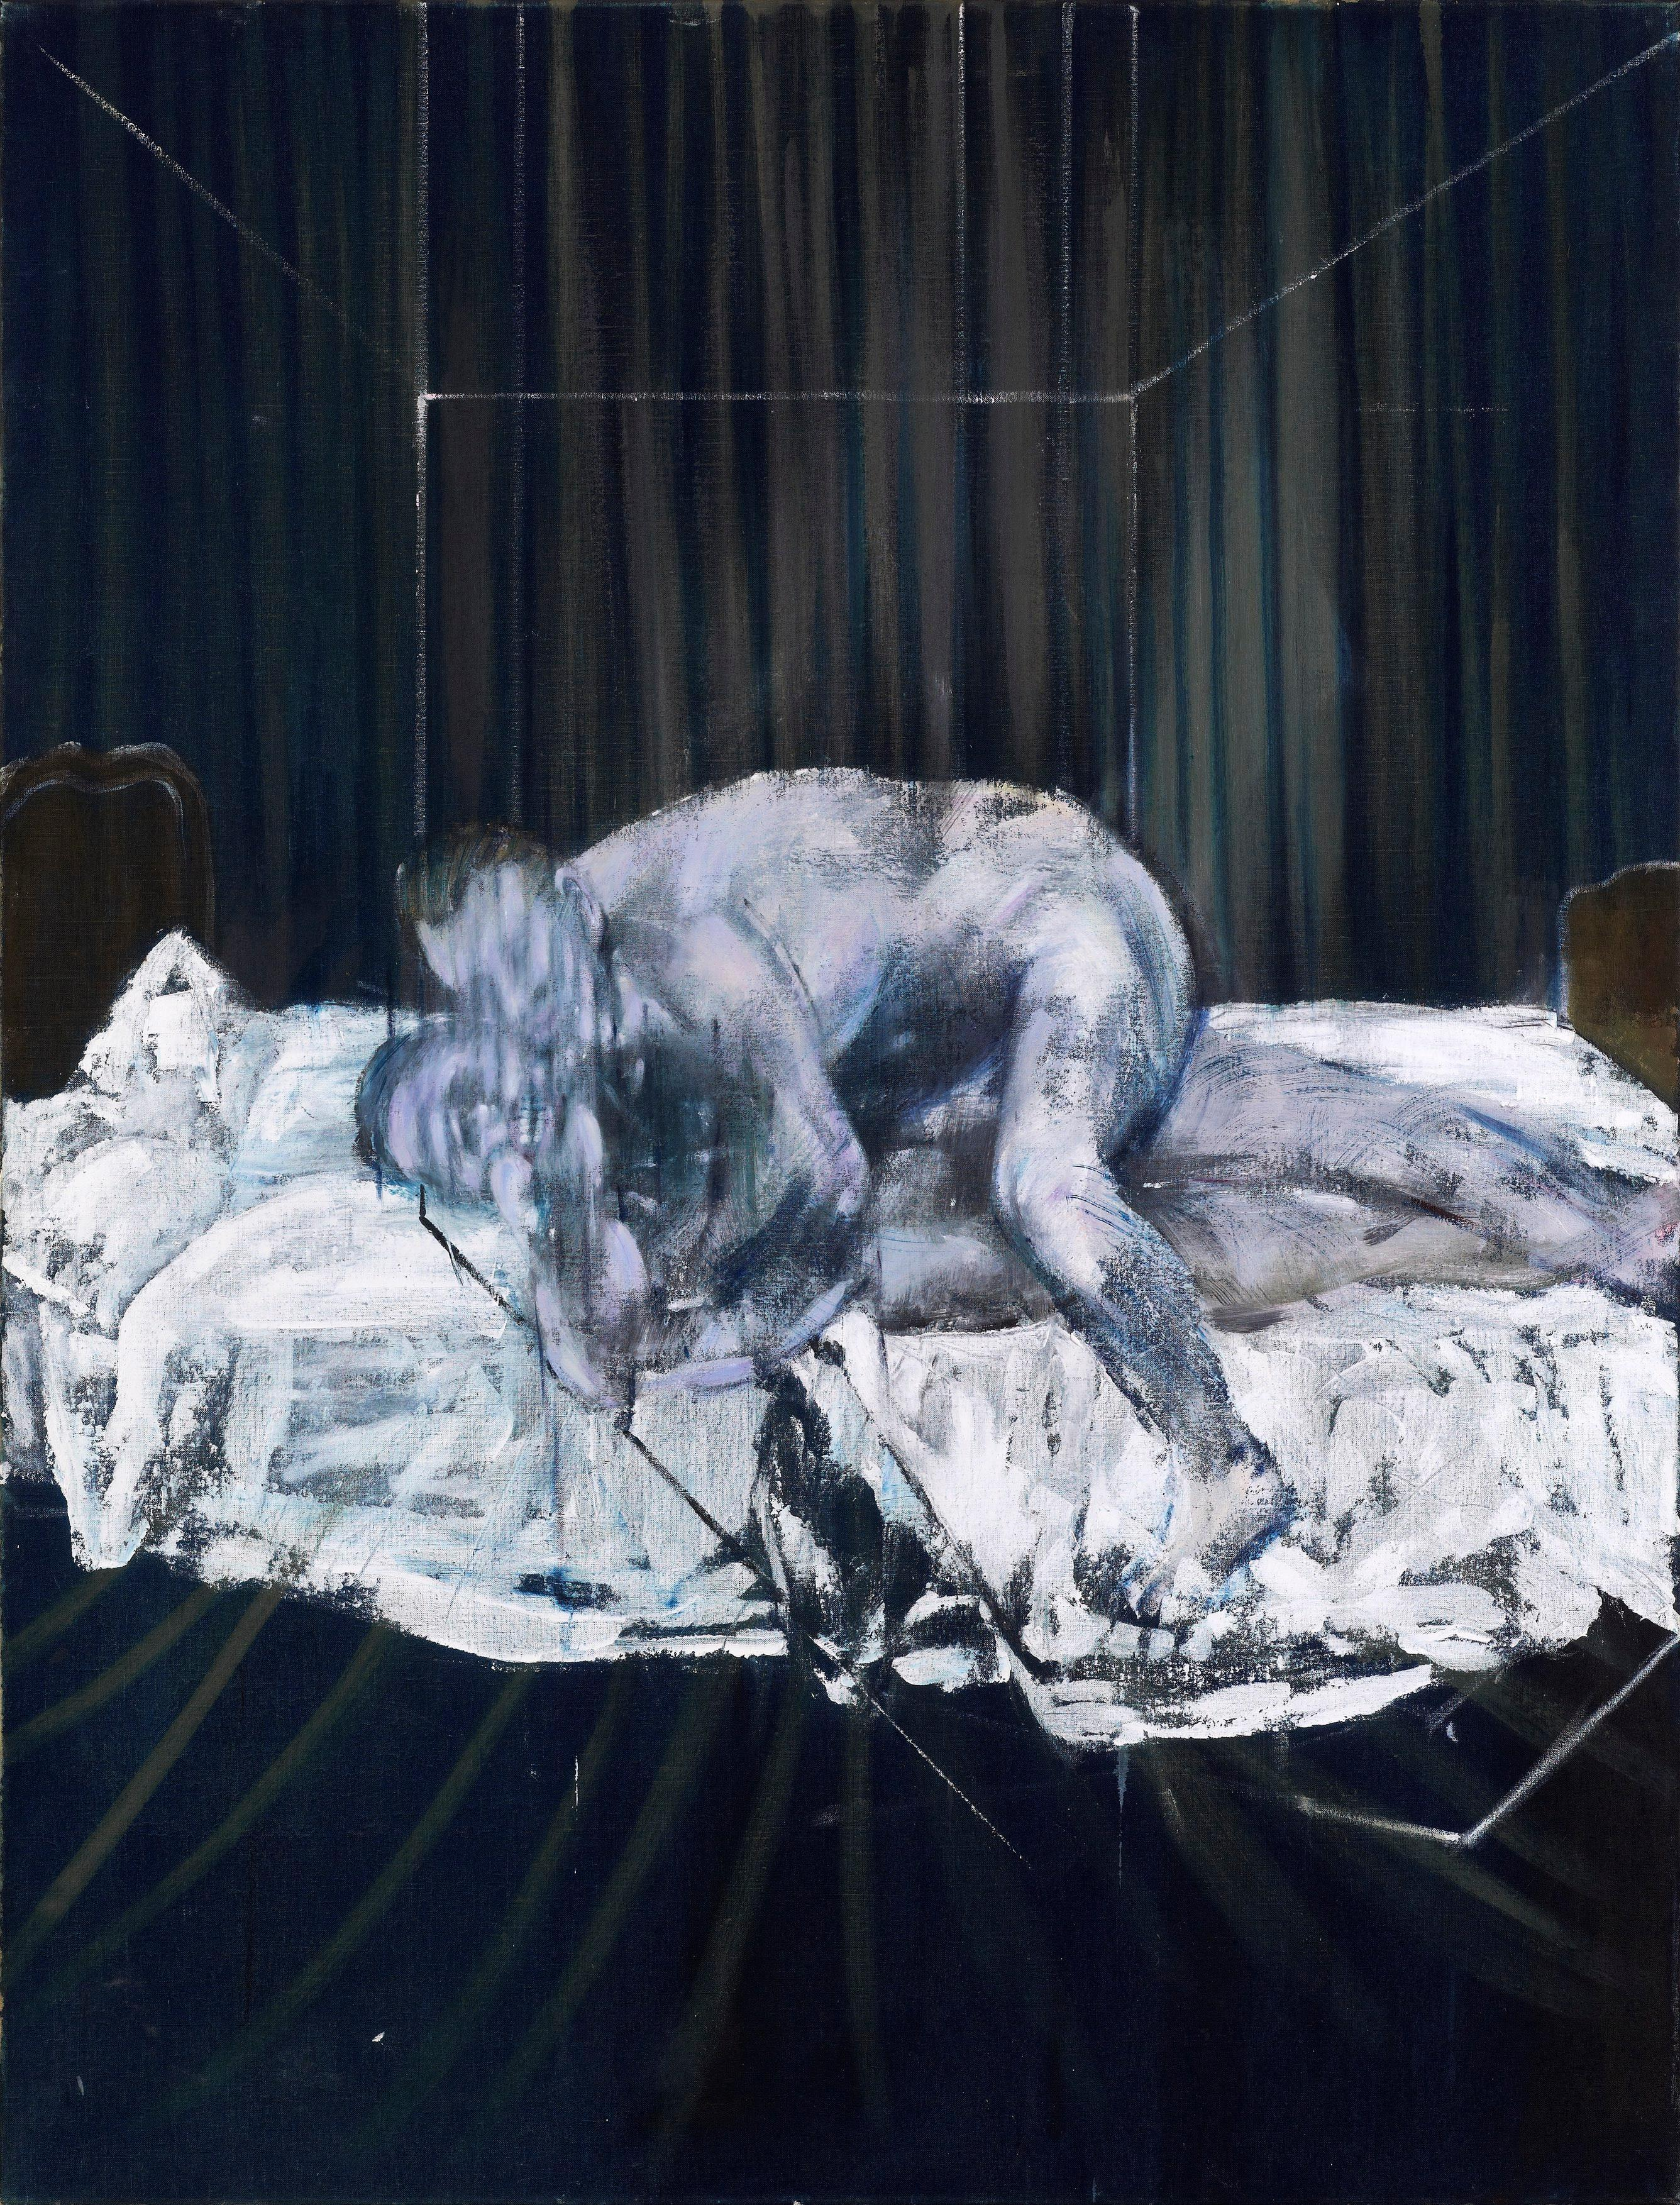 Francis Bacon's Two Figures, 1953: sex, death and animal instinct